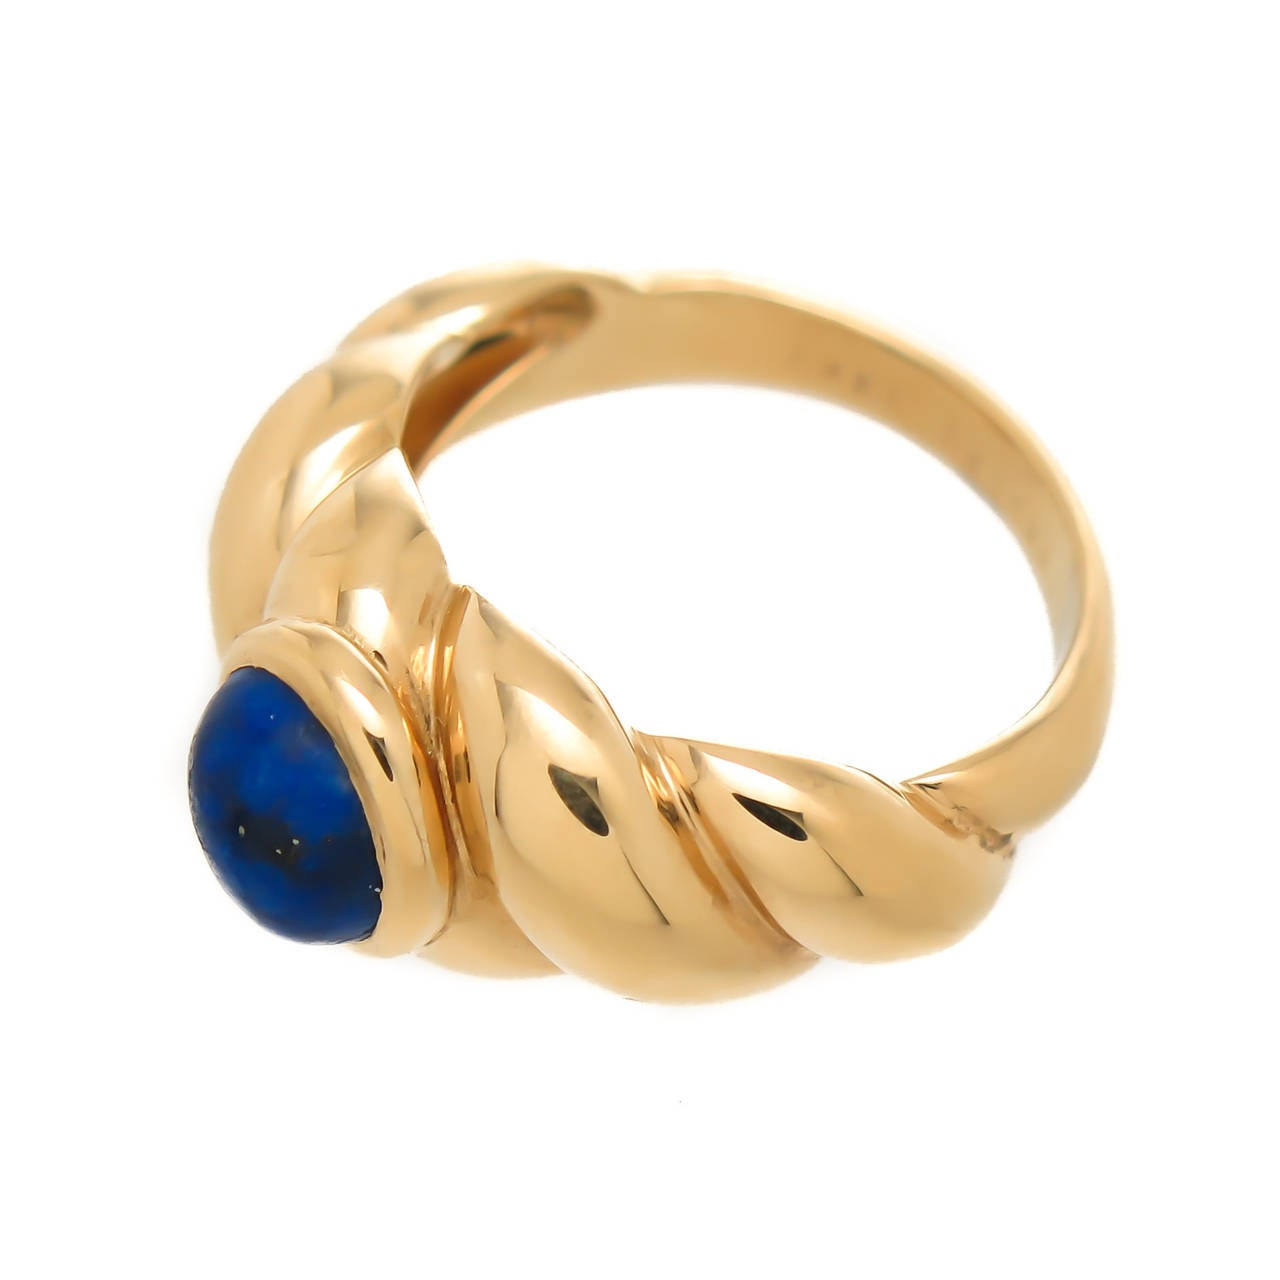 Circa 2000 Van Cleef & Arpels 18K Yellow Gold Ring, centrally set with an oval Lapis Lazuli. Signed and numbered, finger size = 6 1/4